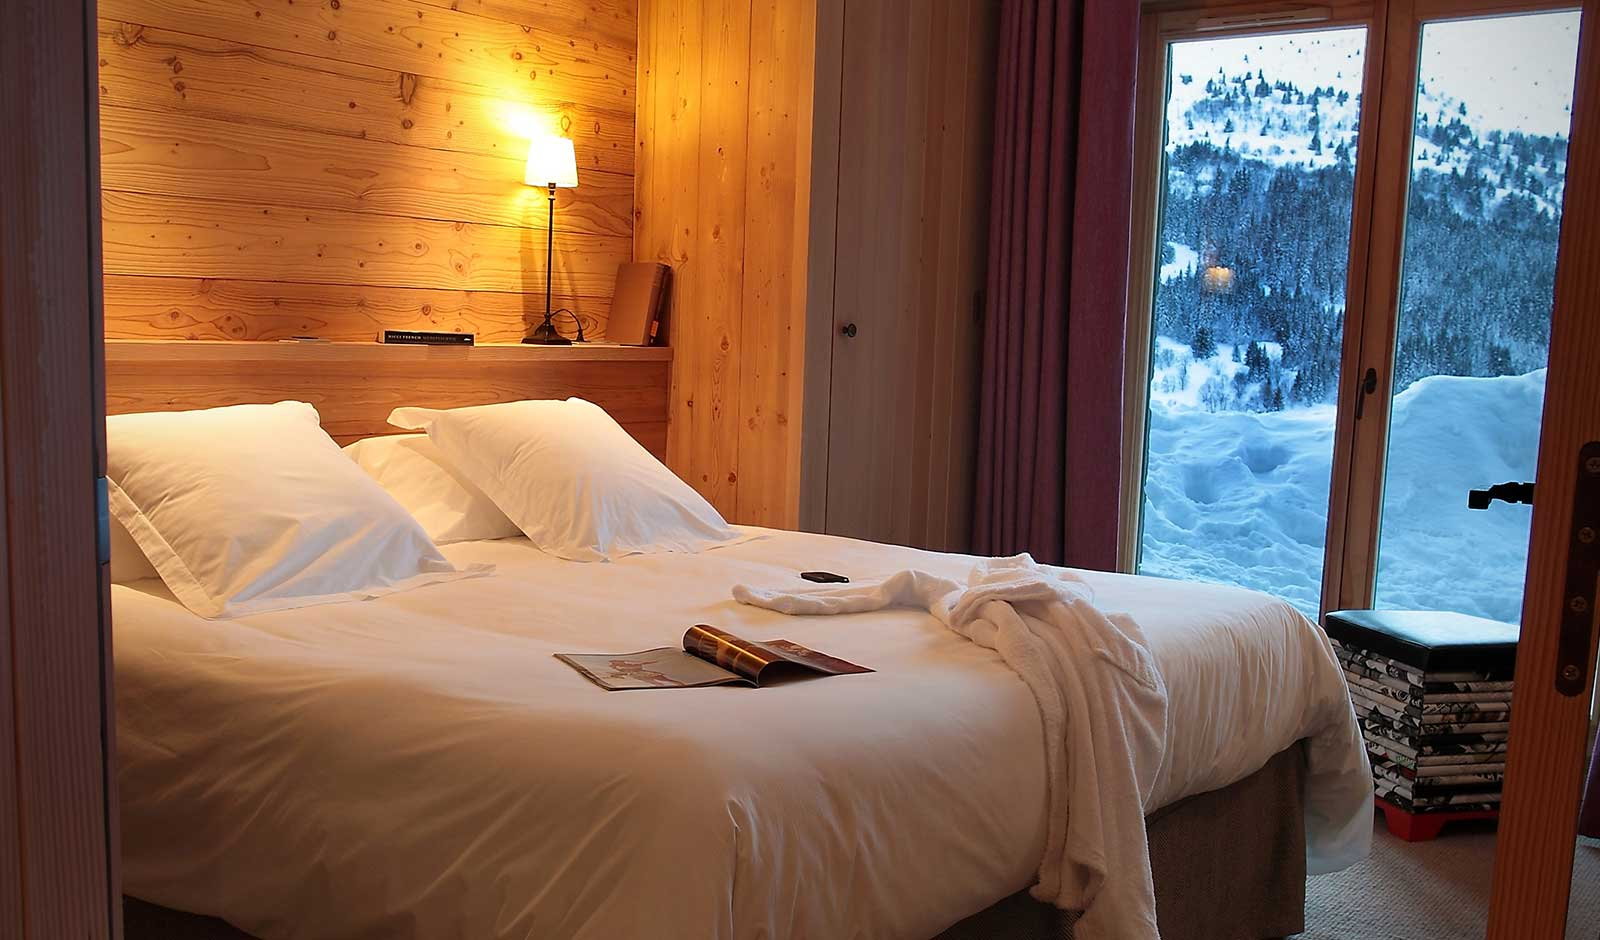 hotel-adray-telebar-9-atelier-crea-and-co-architecte-design-project-manager-meribel-savoie